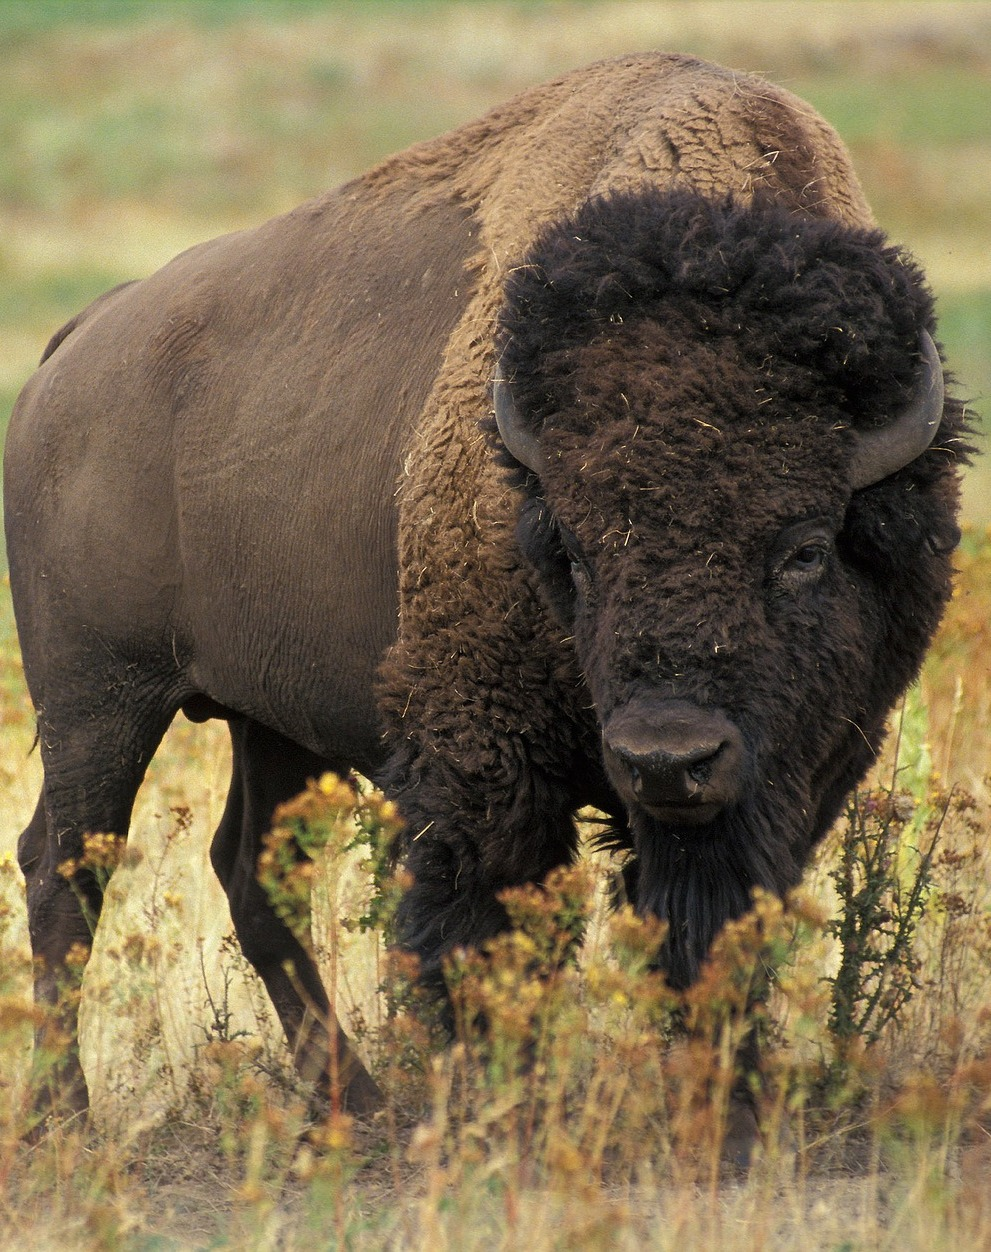 The mighty and fearsome bison.